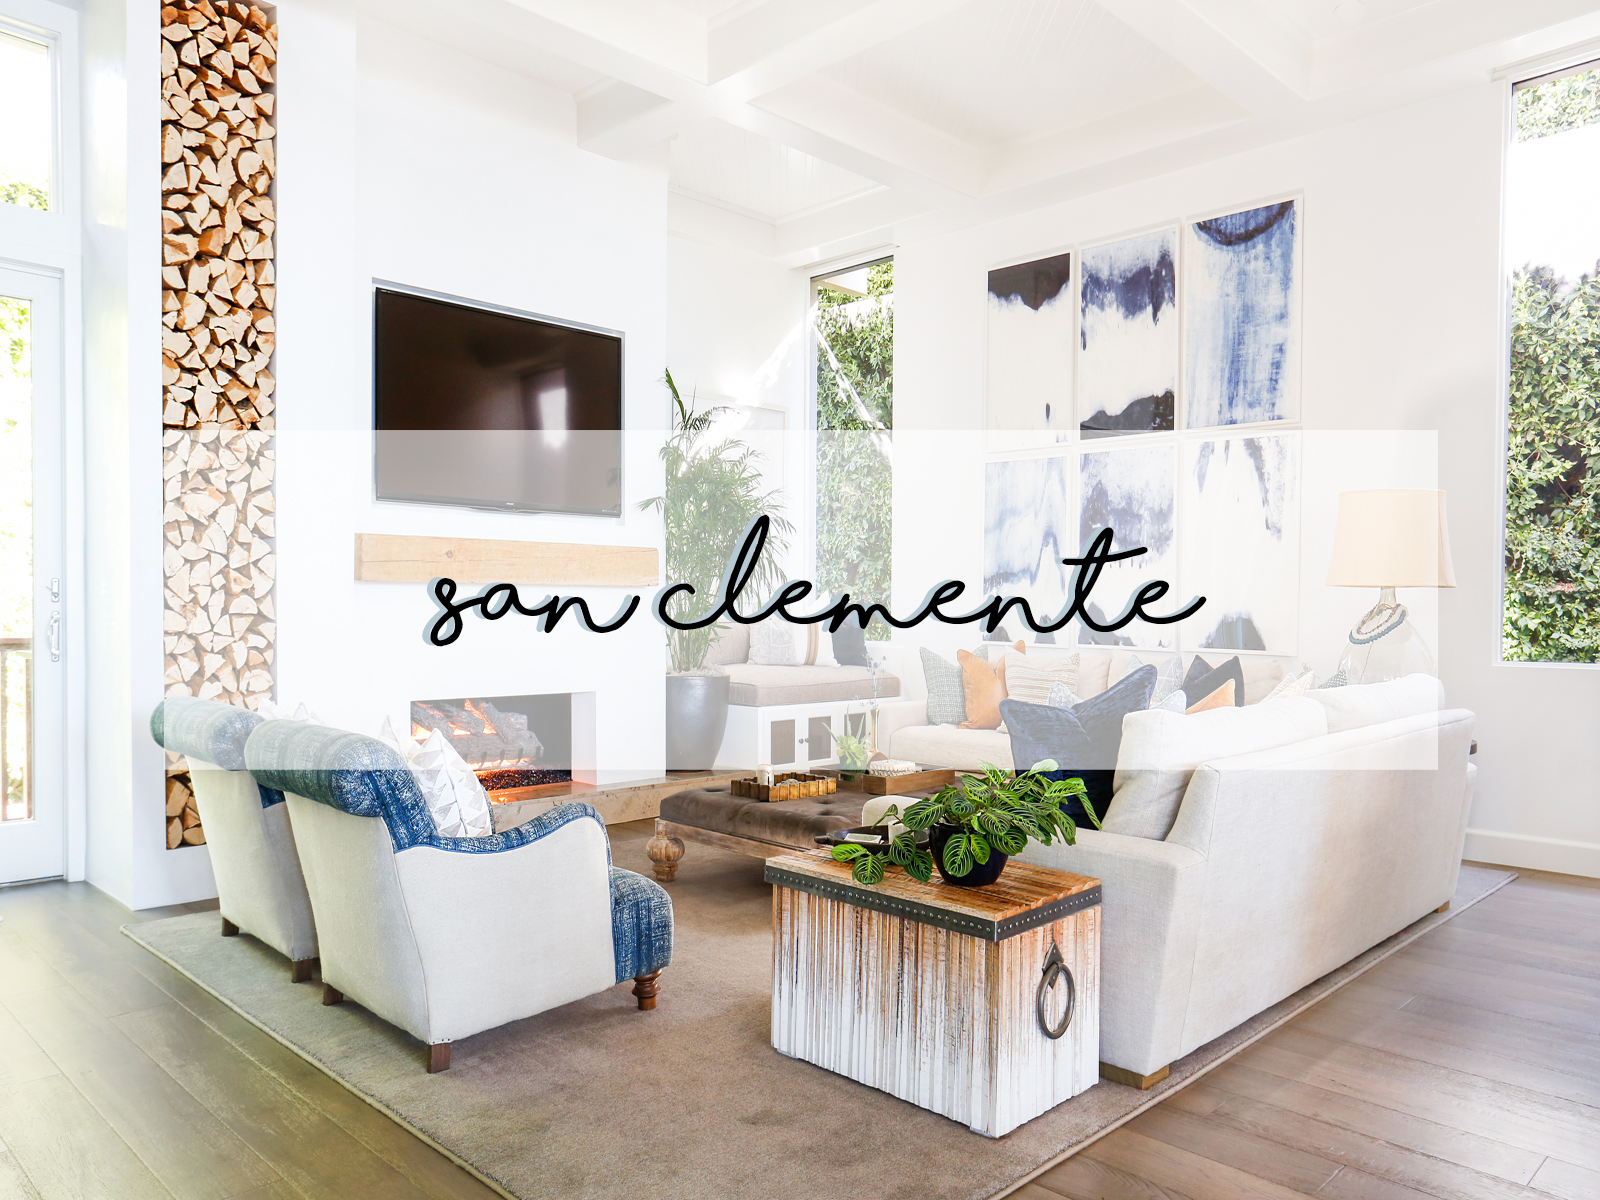 blackband_design_project-san-clemente